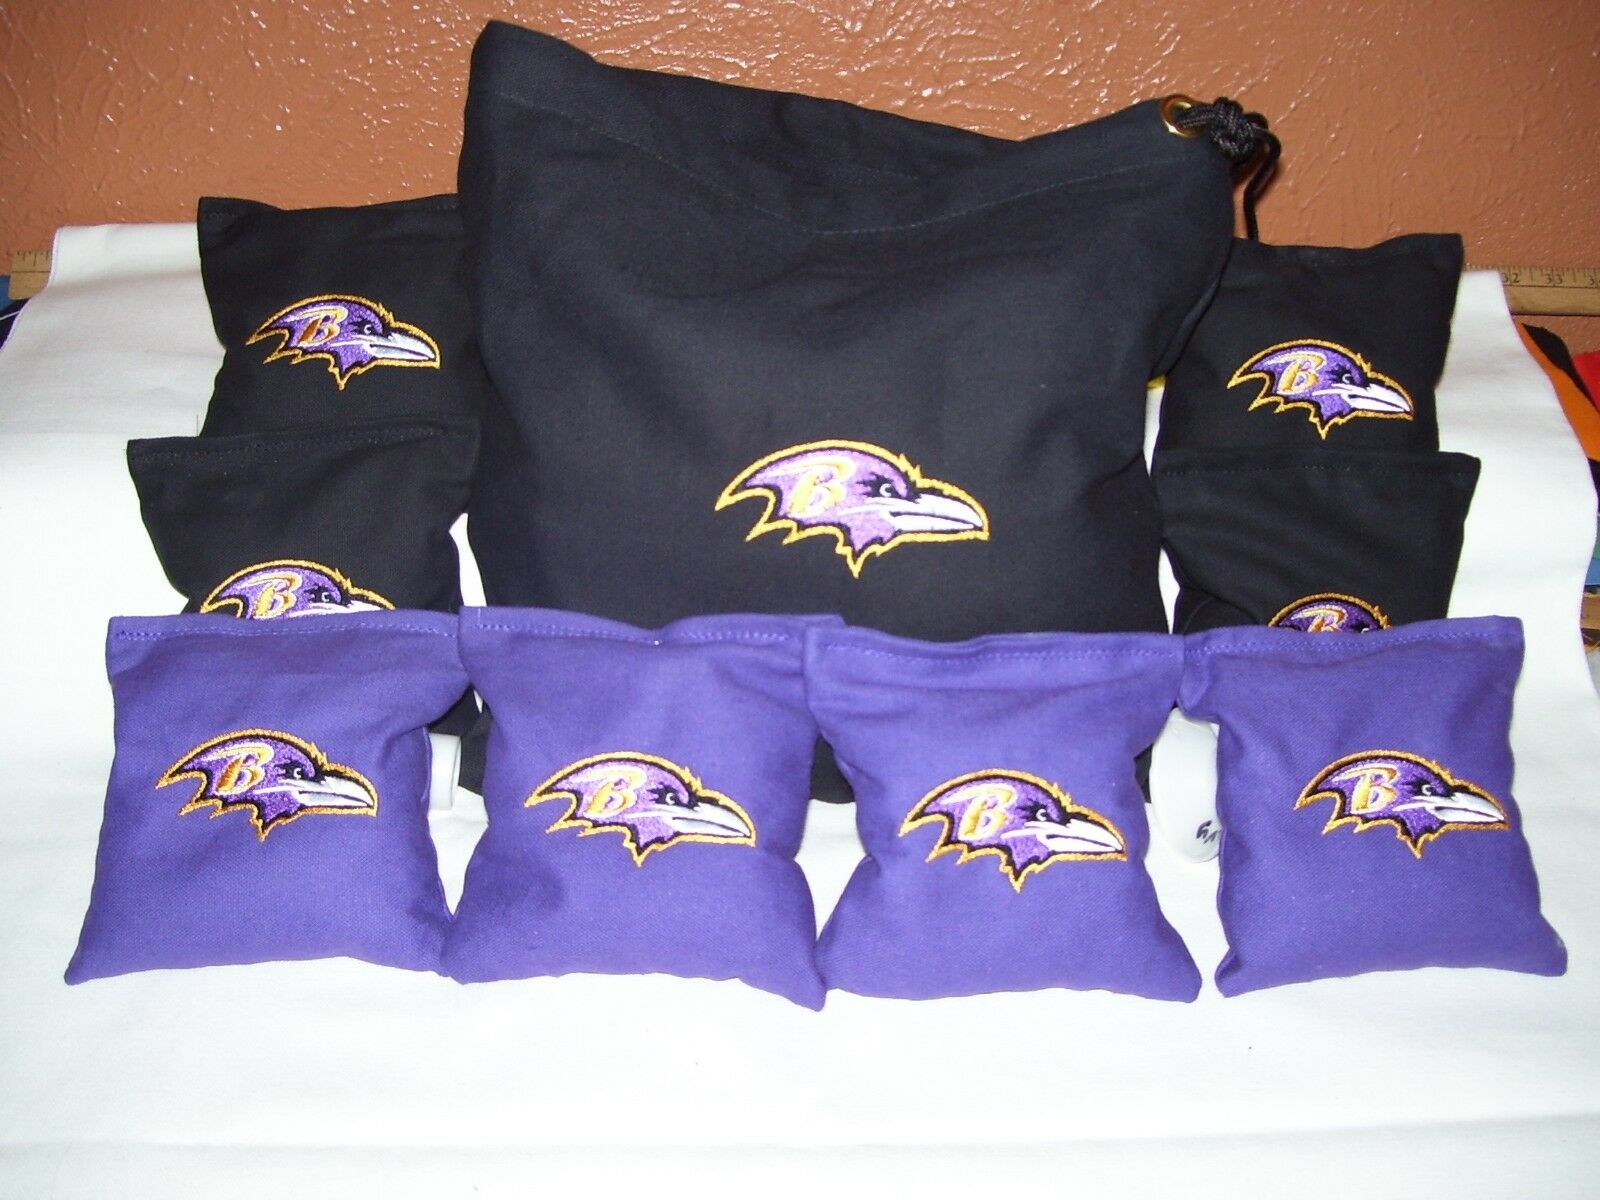 Baltimore Ravens Cornhole corn hole set of 8 Bags plus Storage Bag